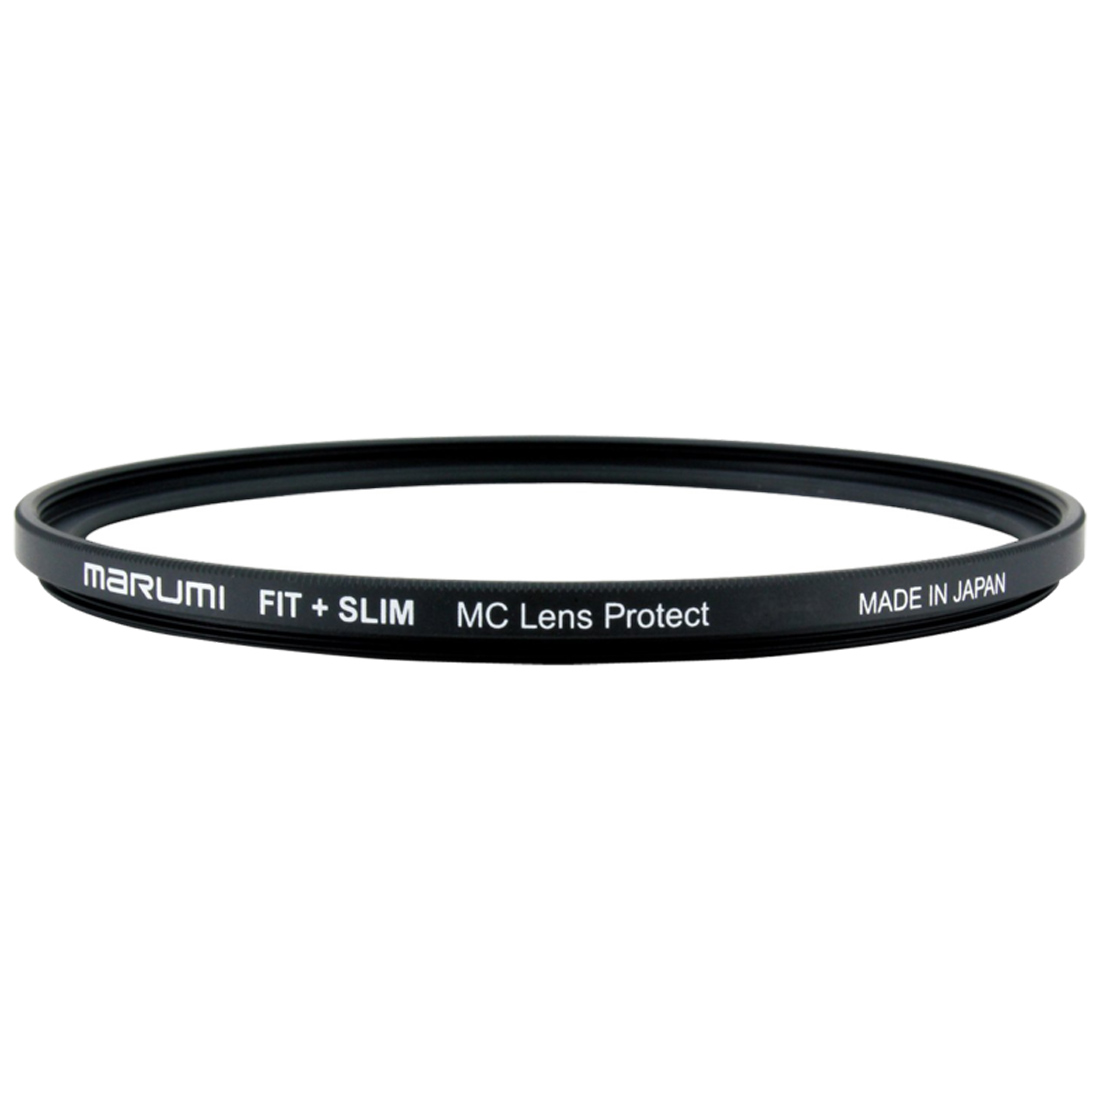 Zaštitni filter Fit+Slim Lens Protect Marumi - 77 mm